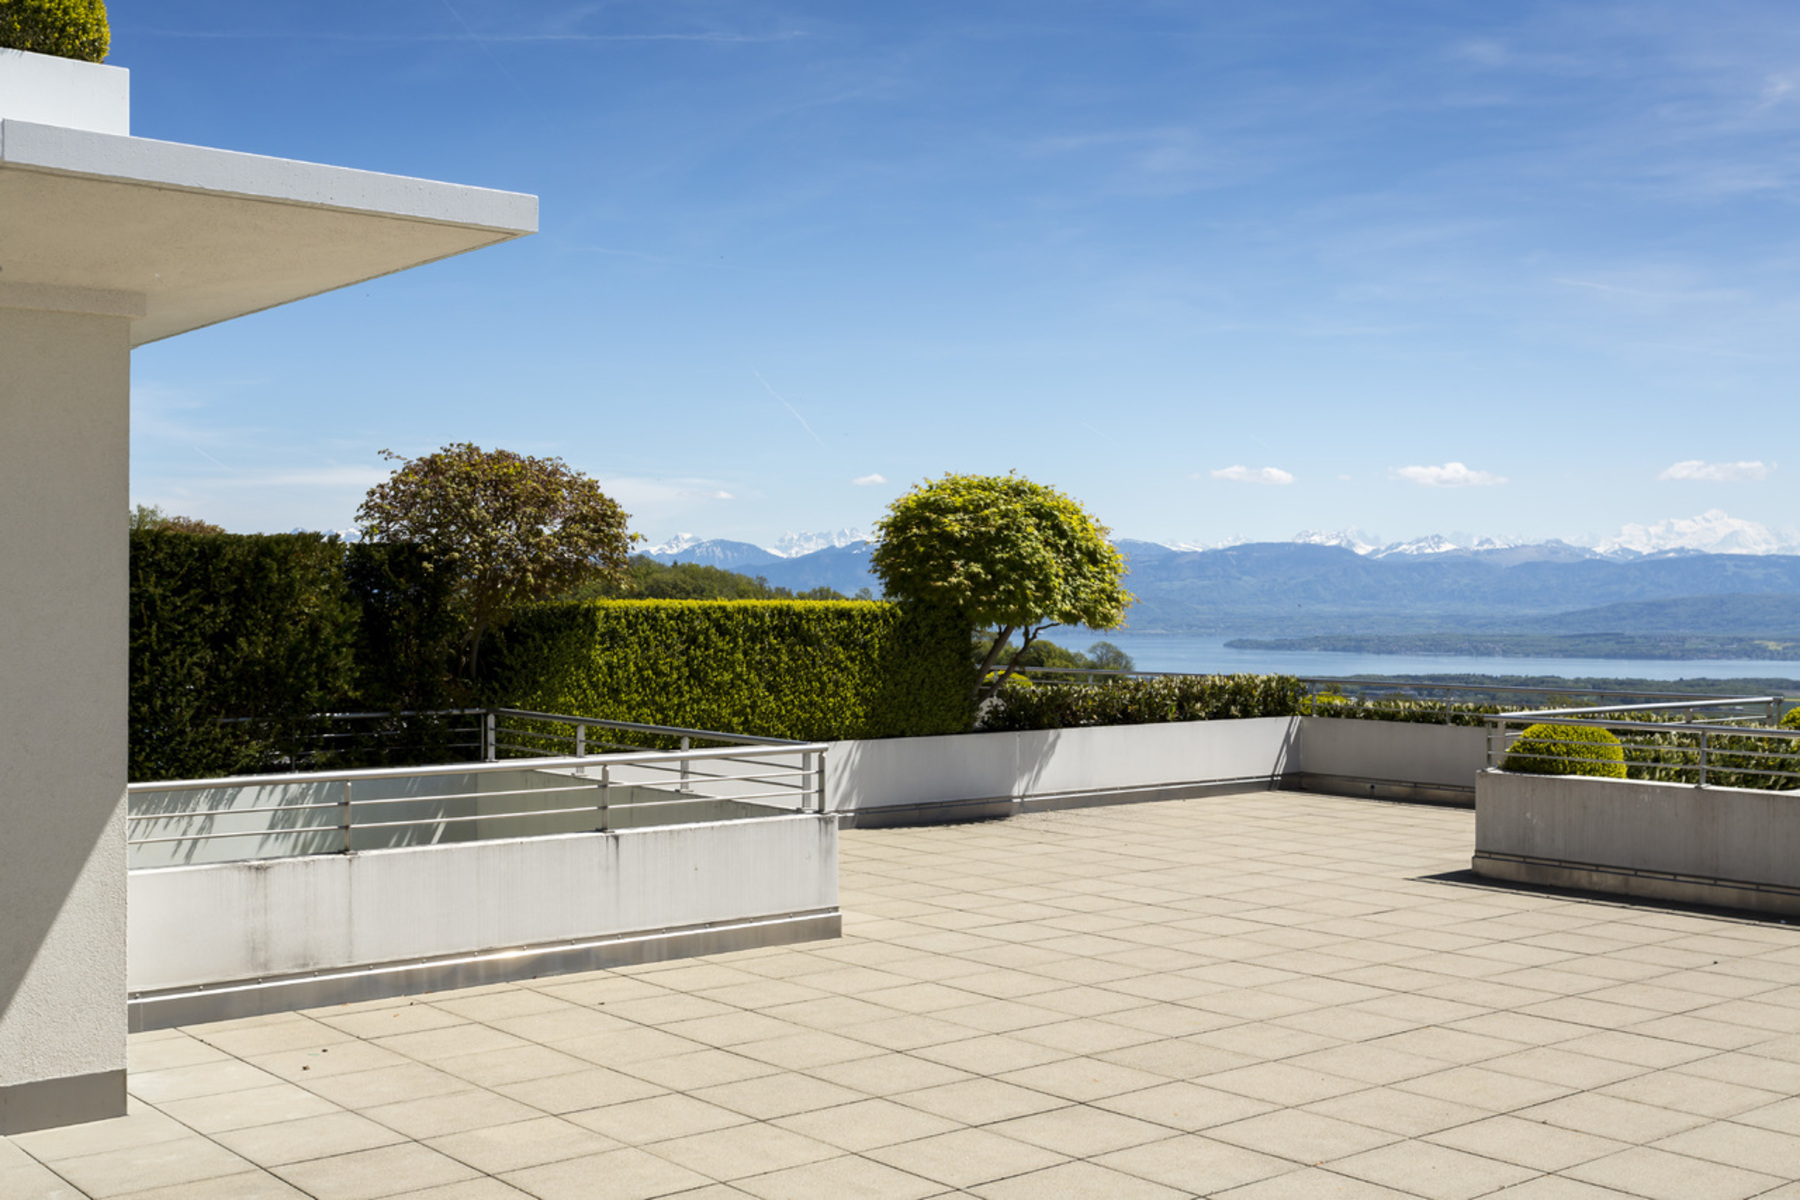 Additional photo for property listing at Luxury apartment with panoramic views of the lake and Alps Genolier Genolier, Vaud 1272 Switzerland